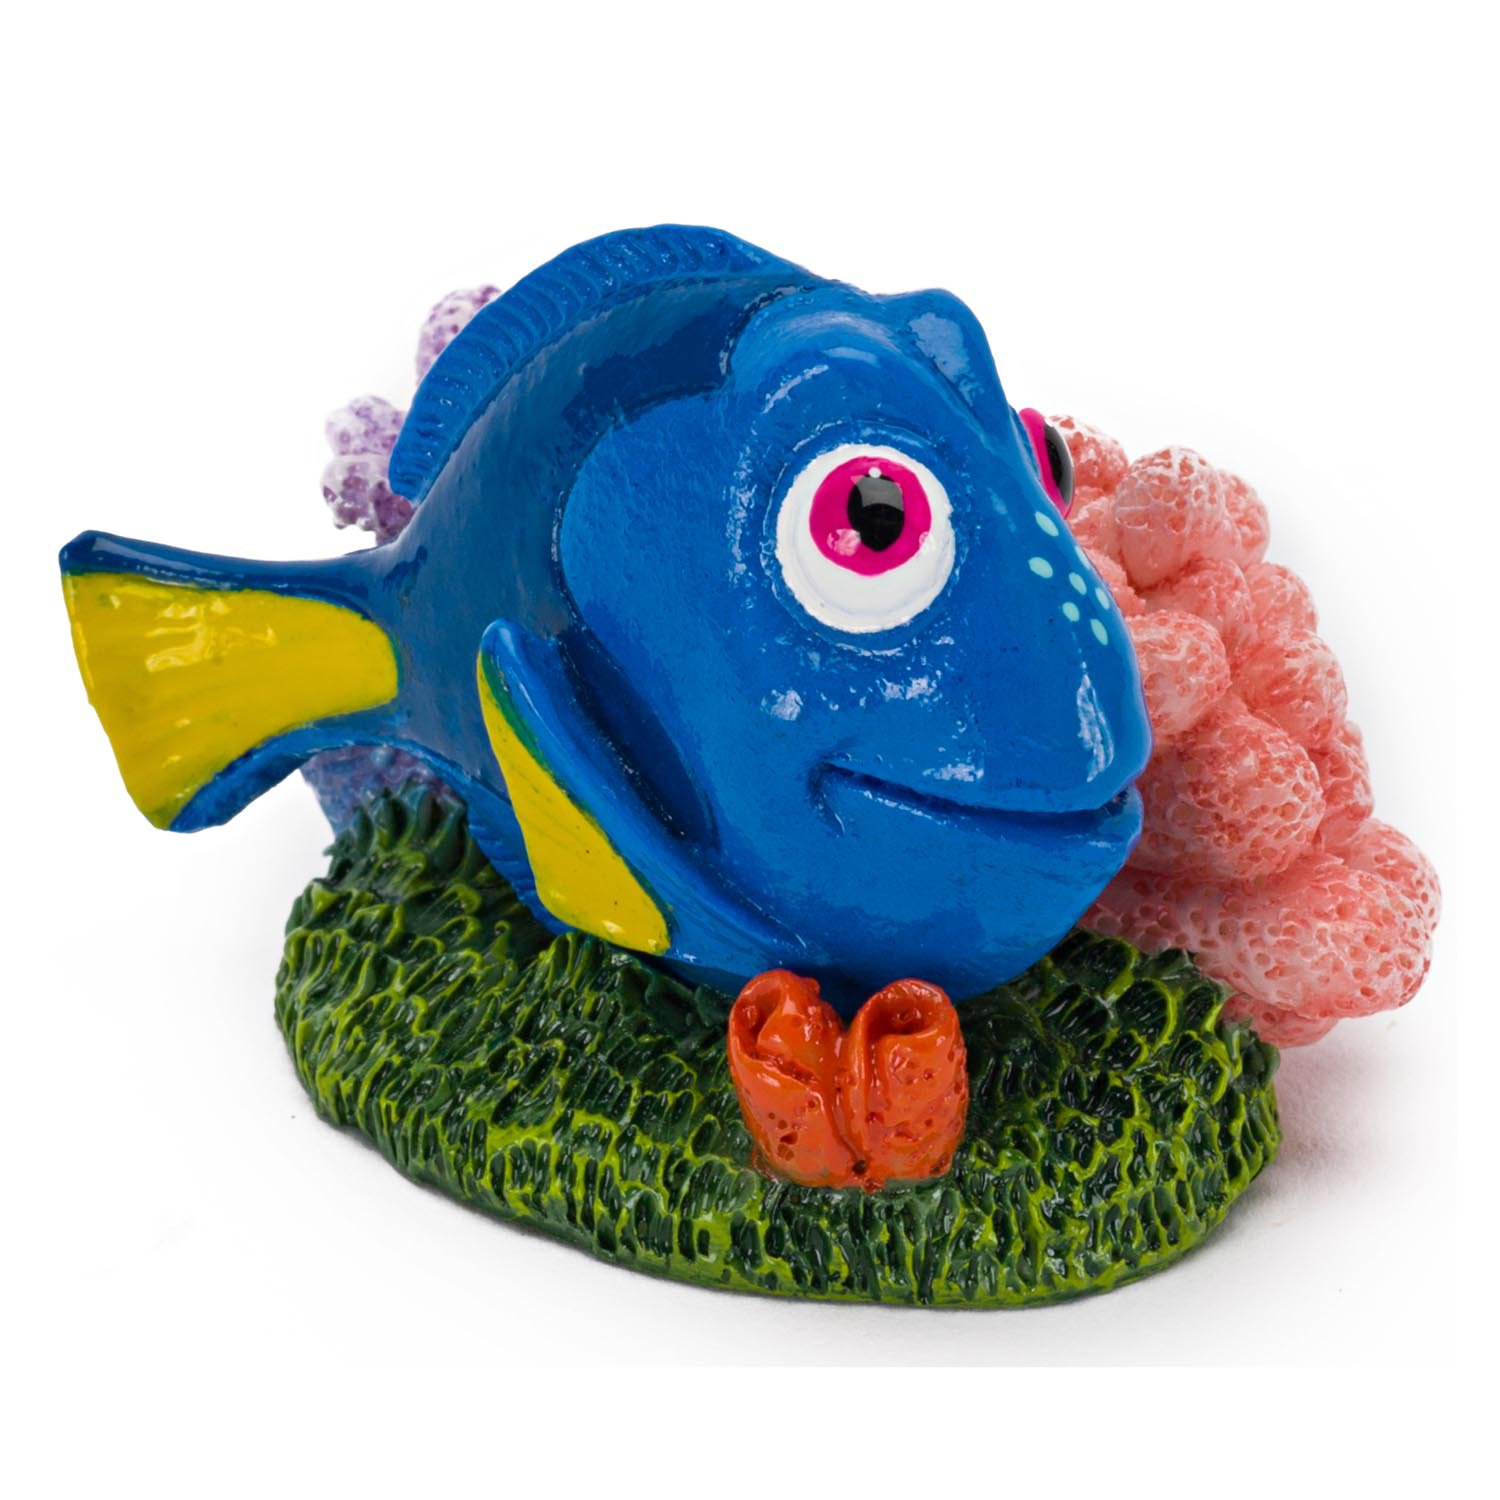 Penn Plax Dory Aquarium Ornament